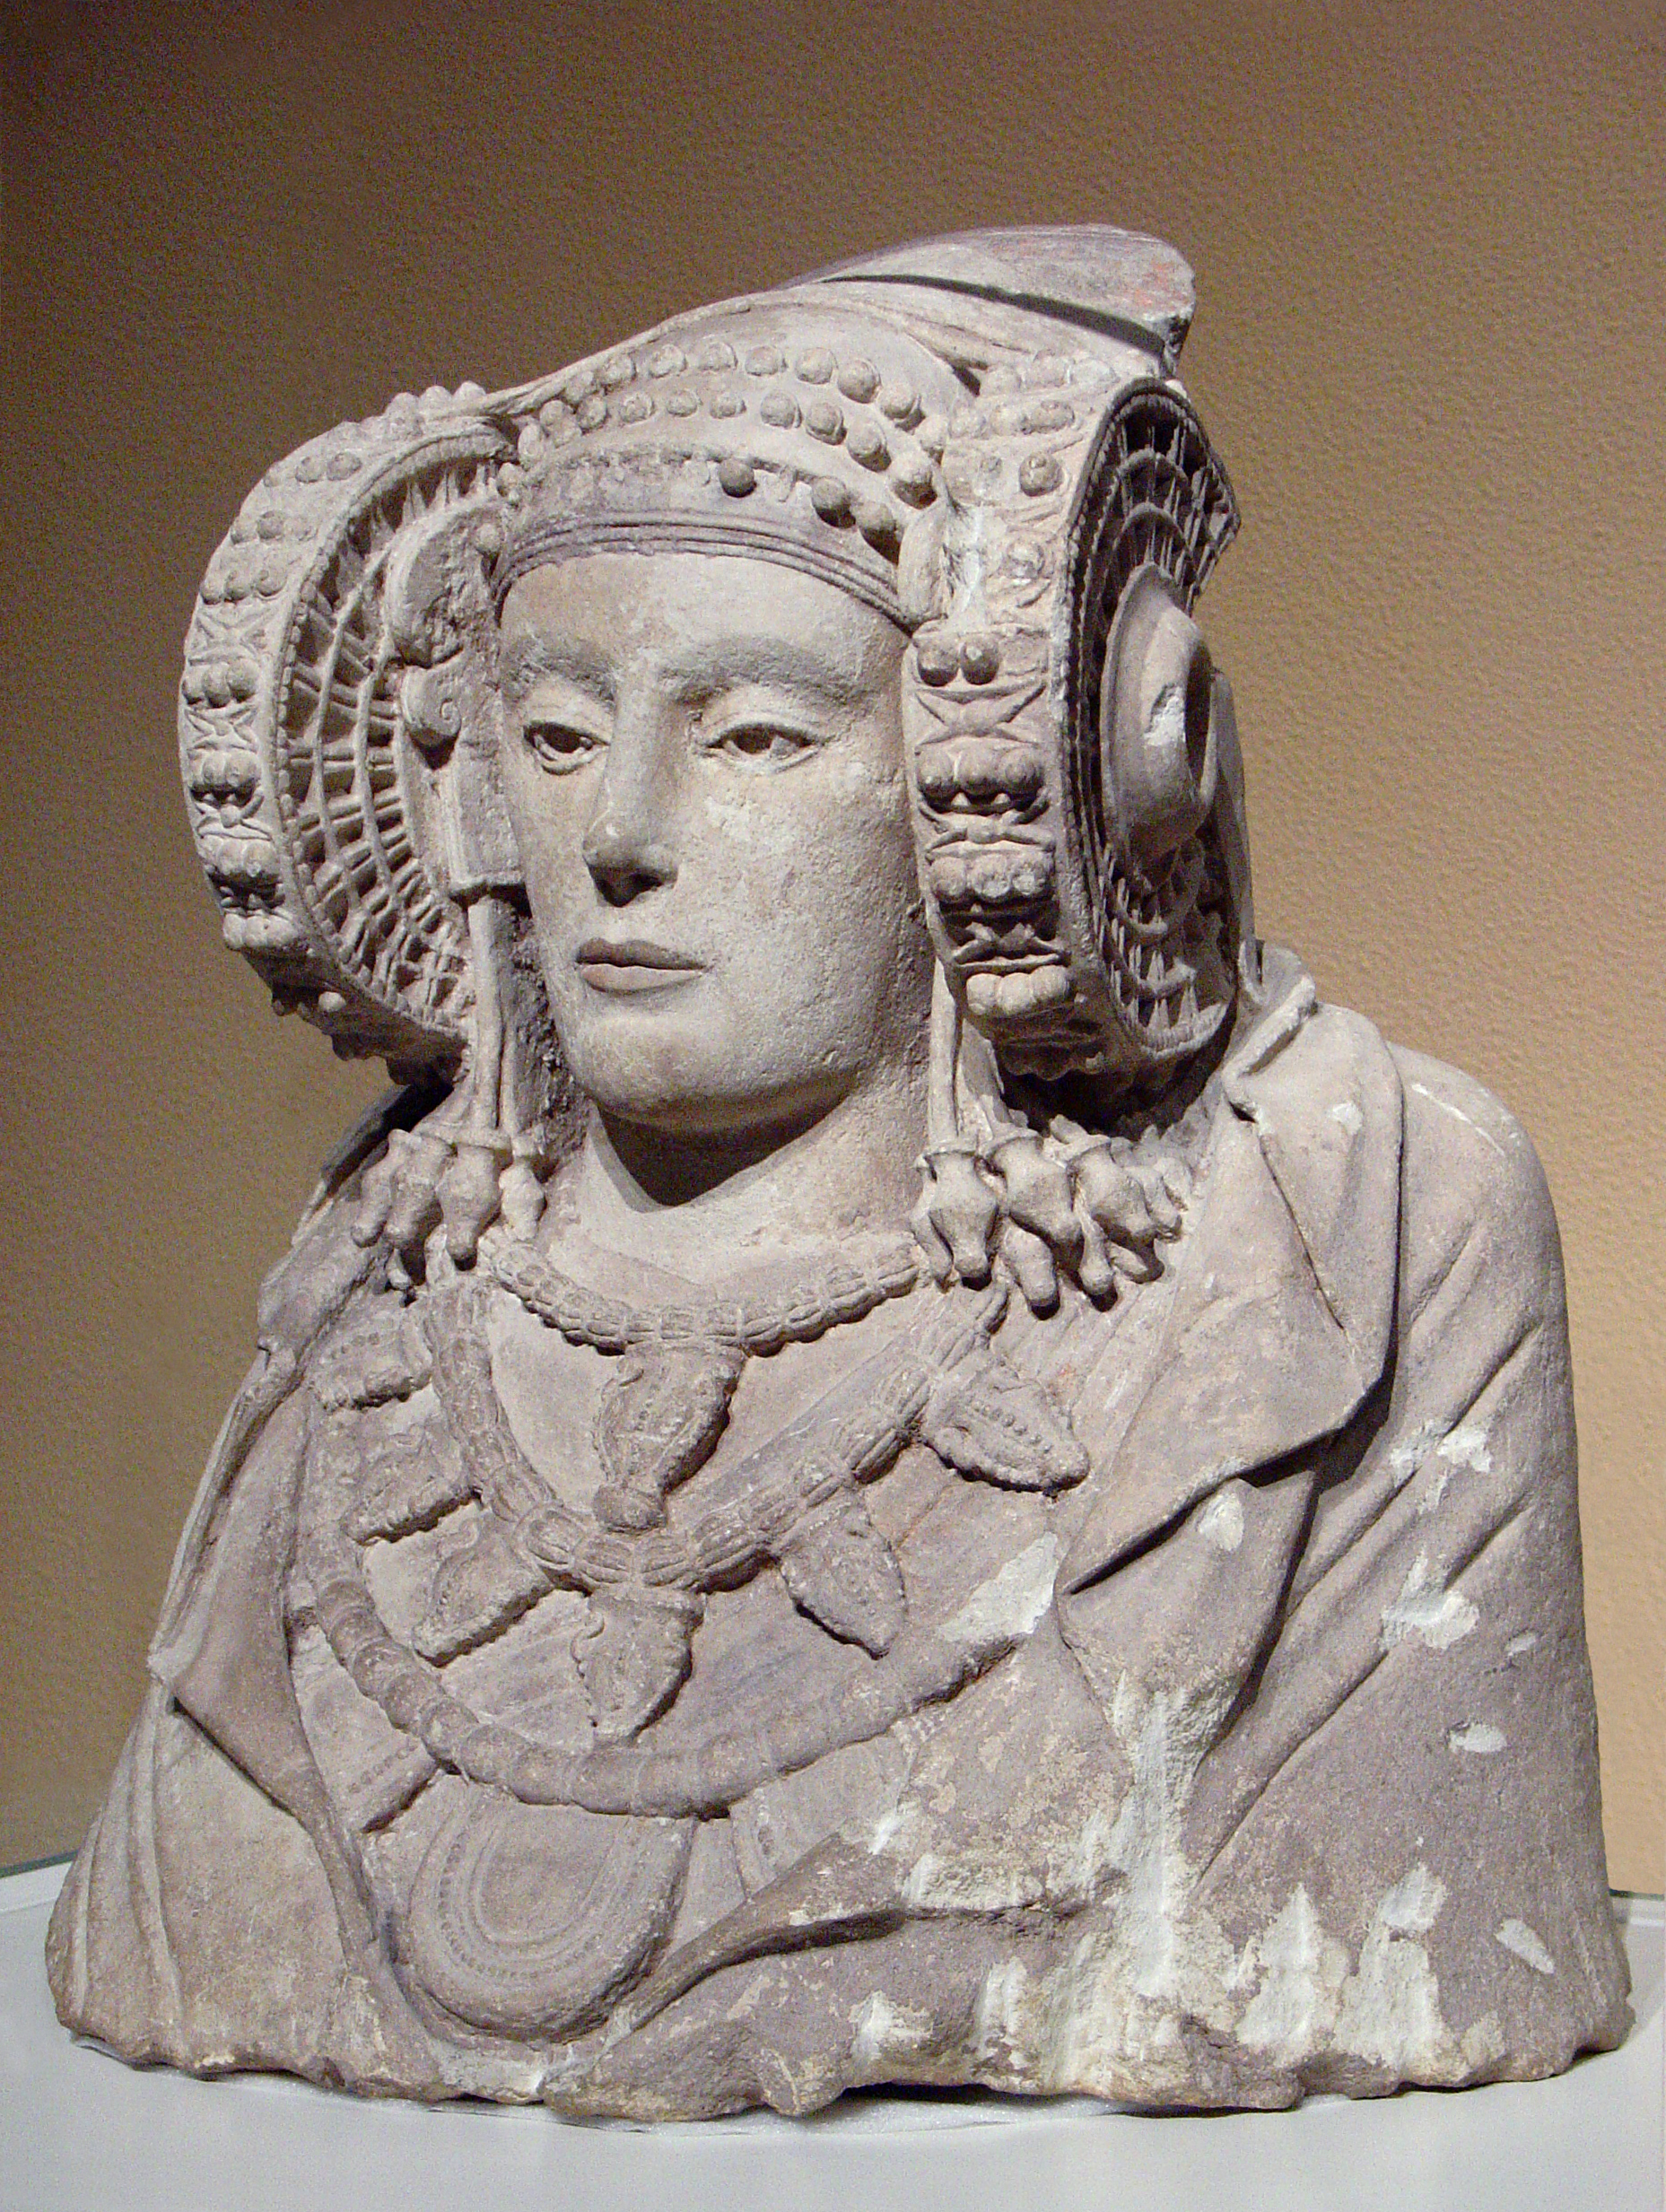 The Lady of Elche, a piece of Iberian sculpture from 4th century BC